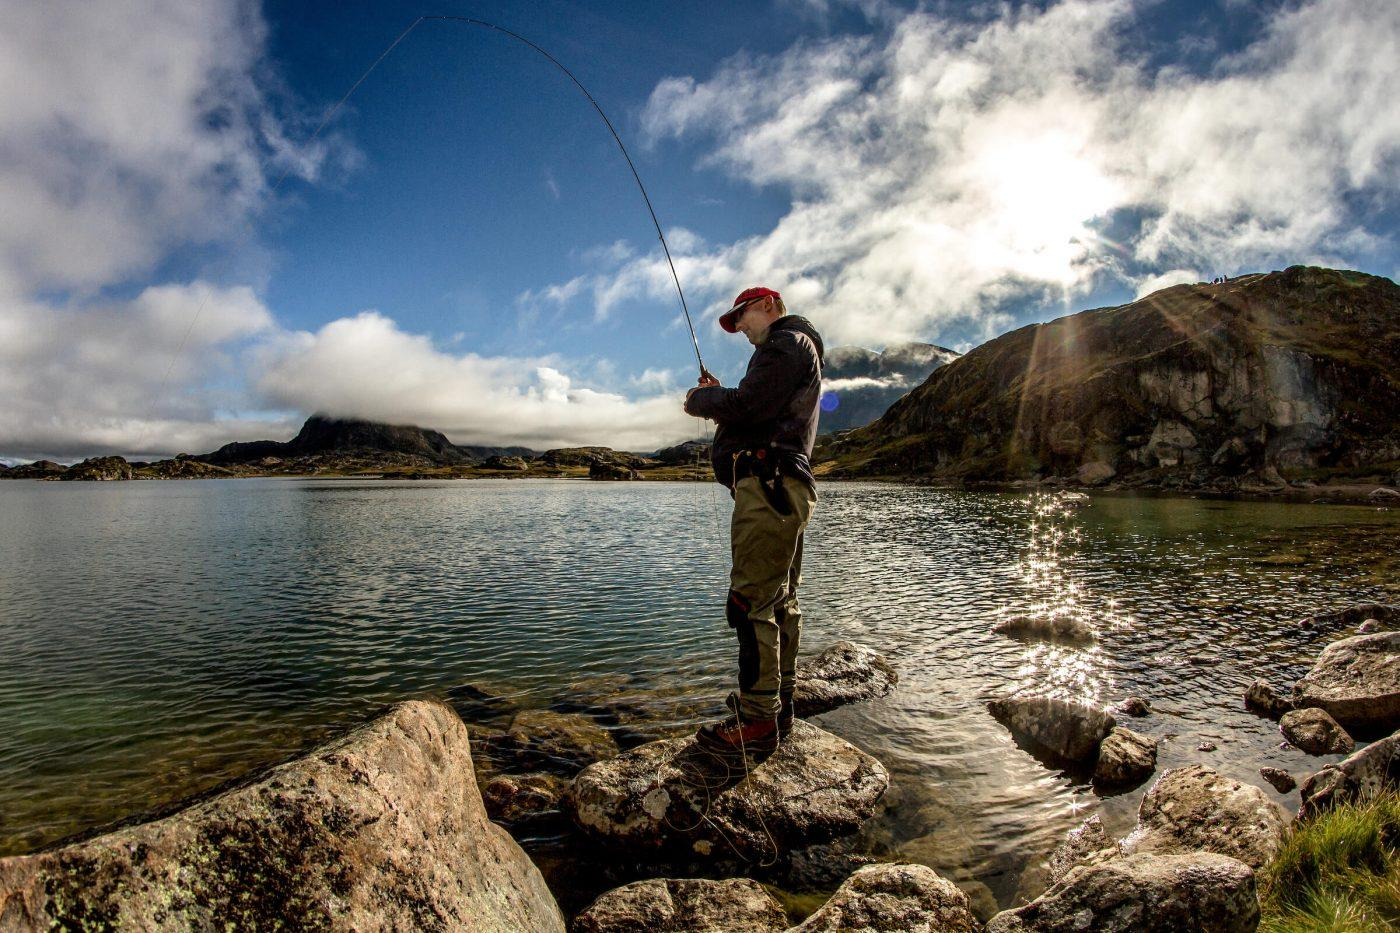 A fisherman at the shores of a lake near the river Erfalik in Greenland. By Mads Pihl